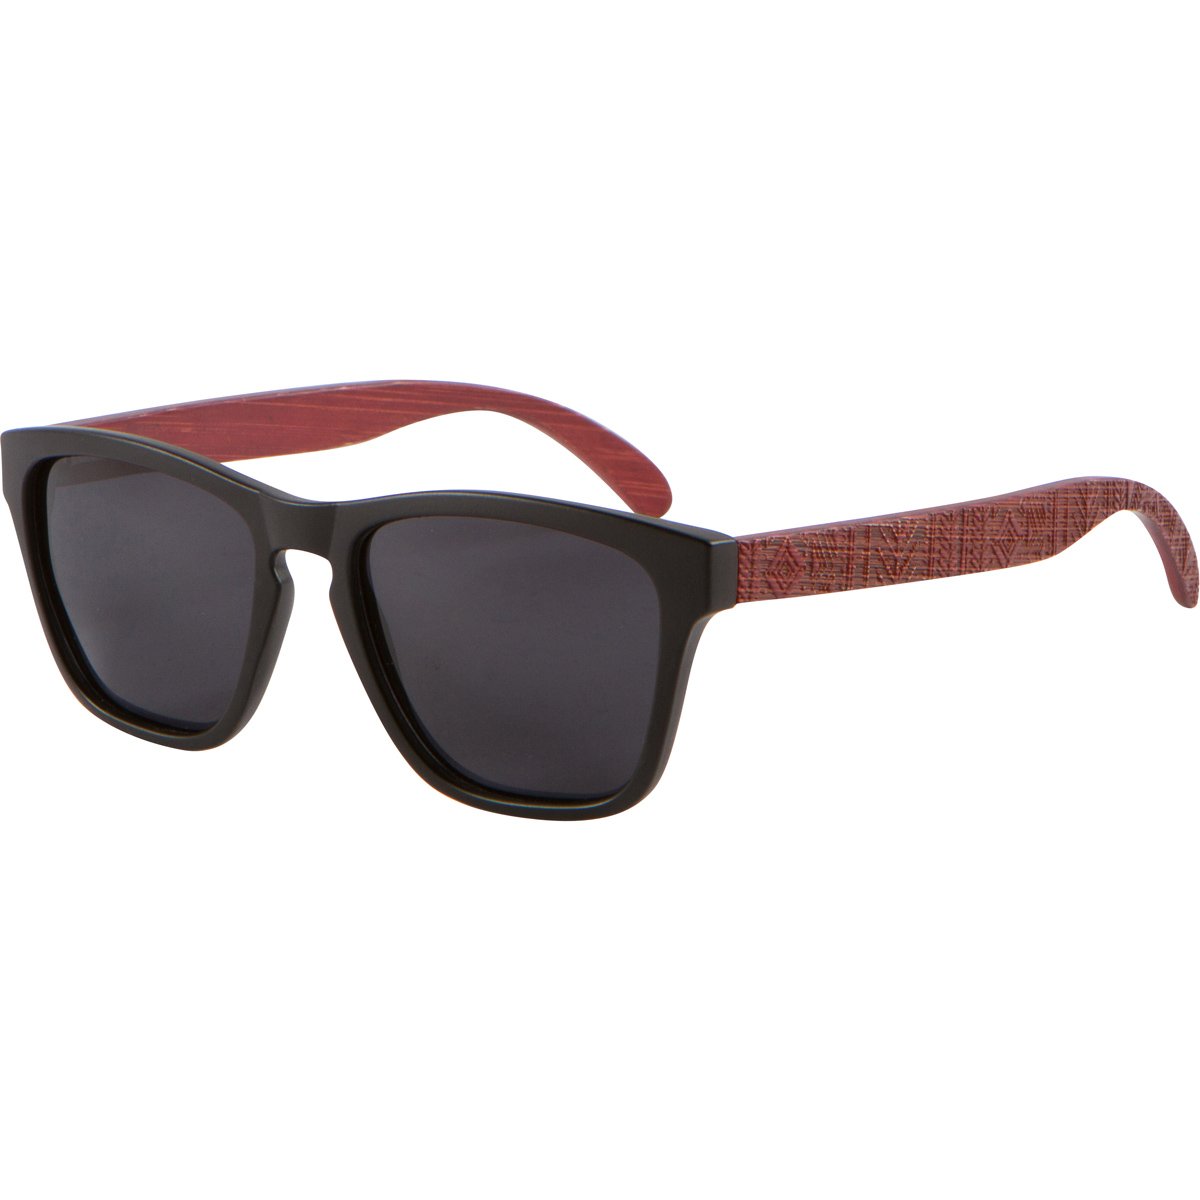 Tribe Red Bamboo Wood Sunglasses